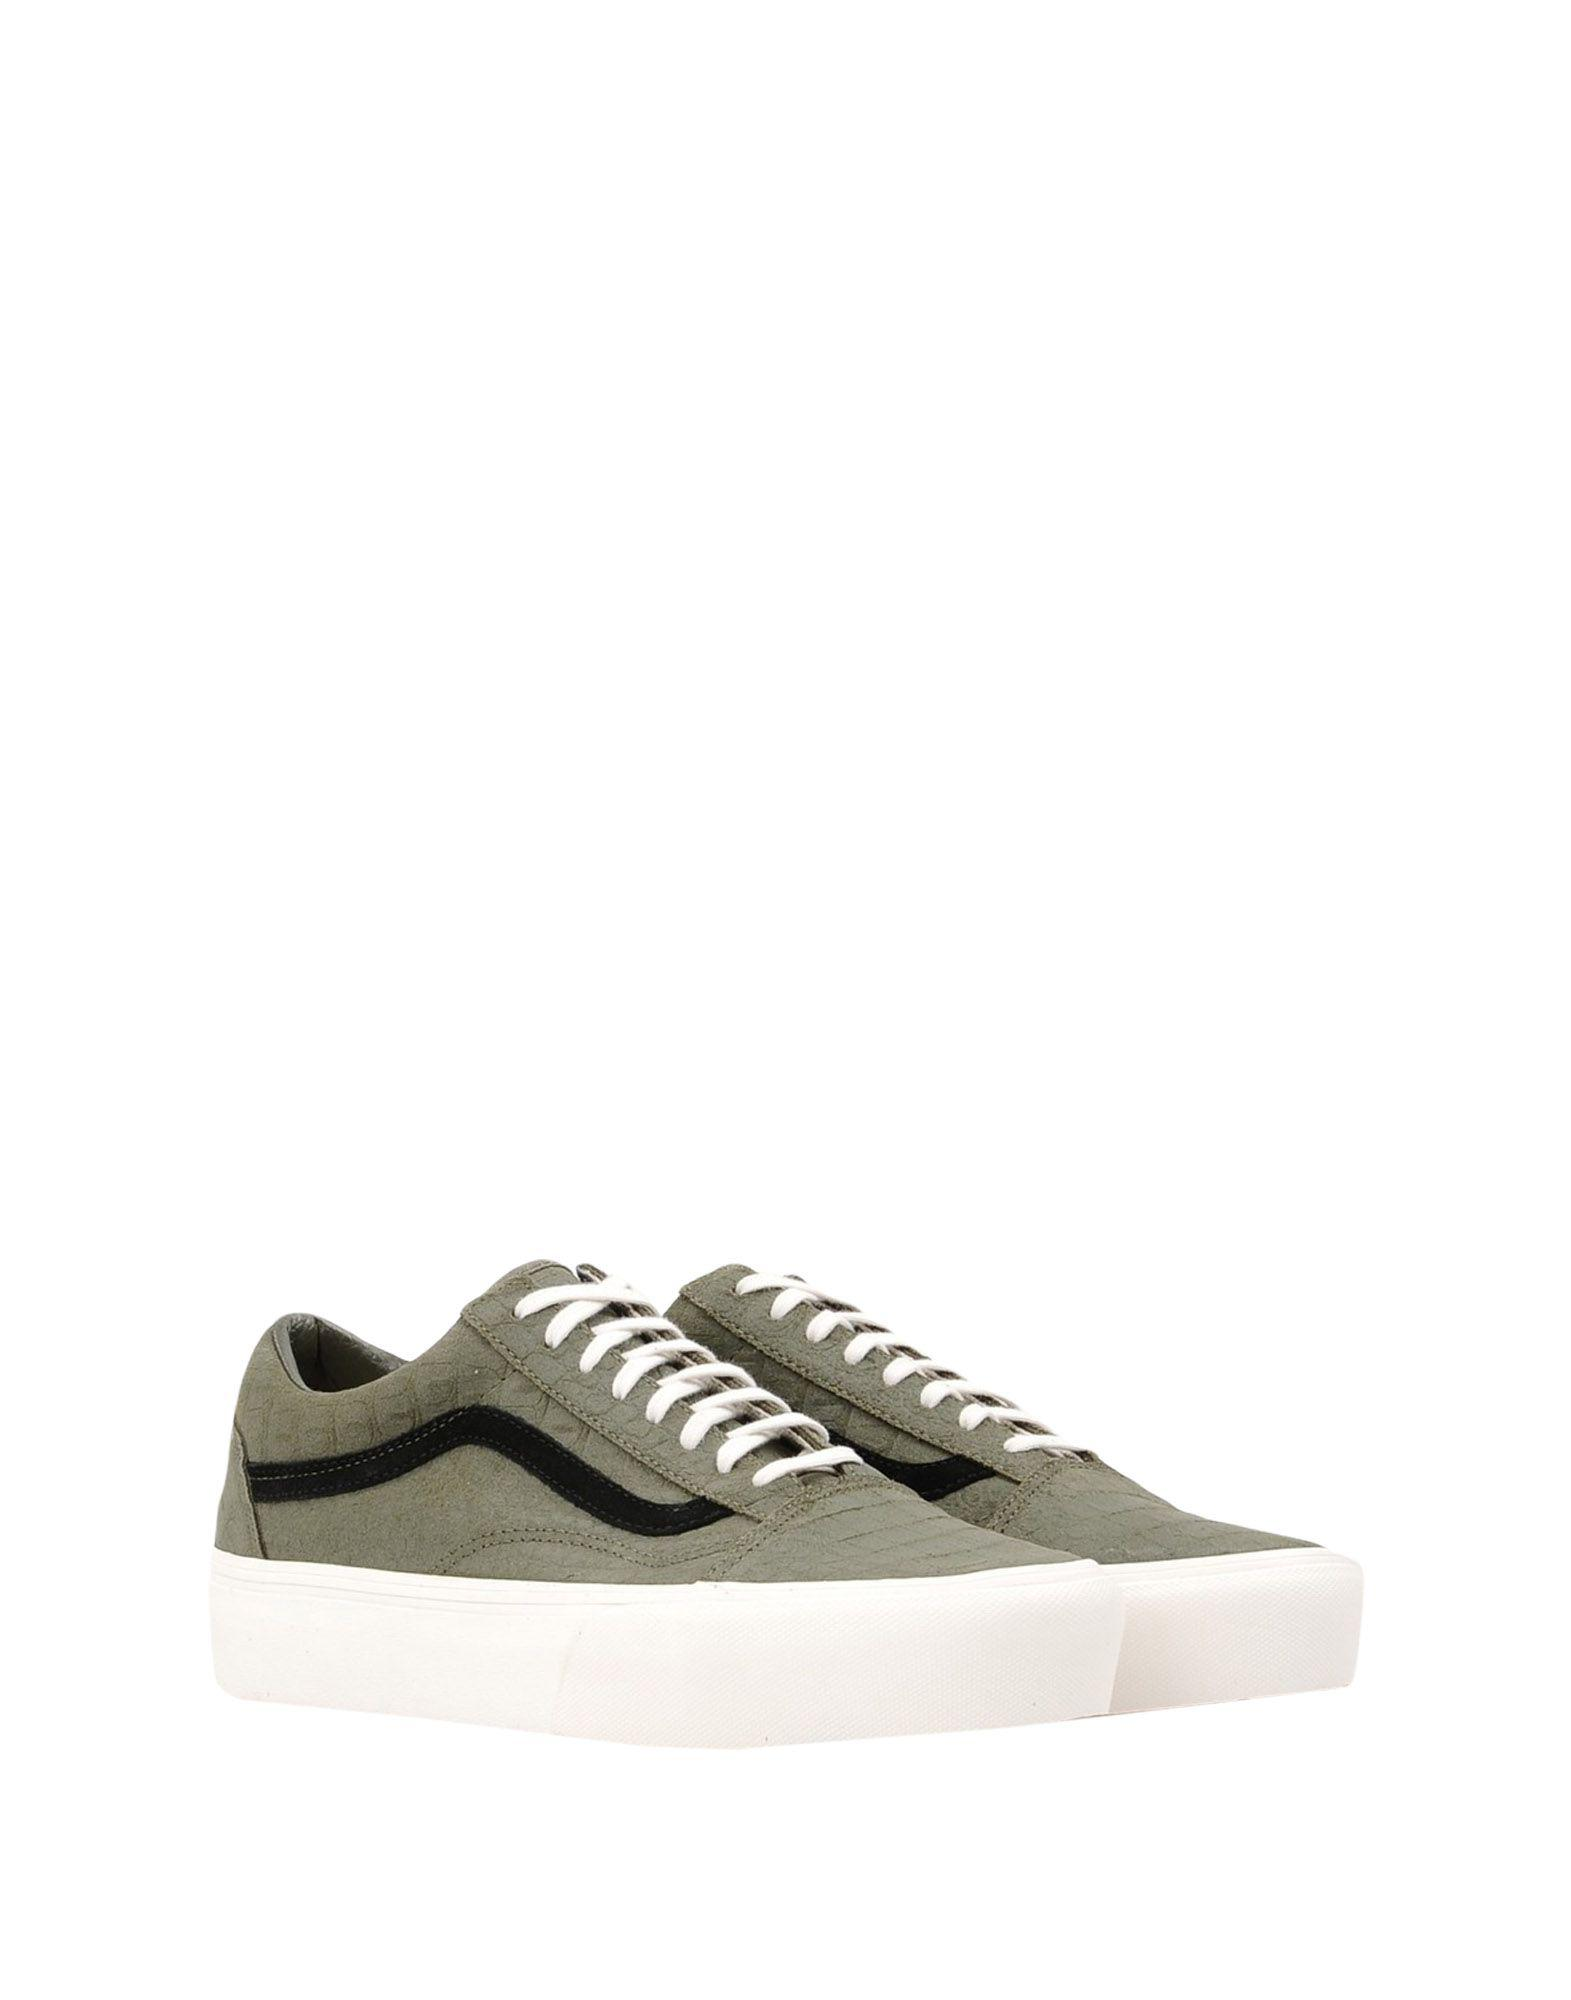 Vans Leather Low-tops & Sneakers in Military Green (Green)